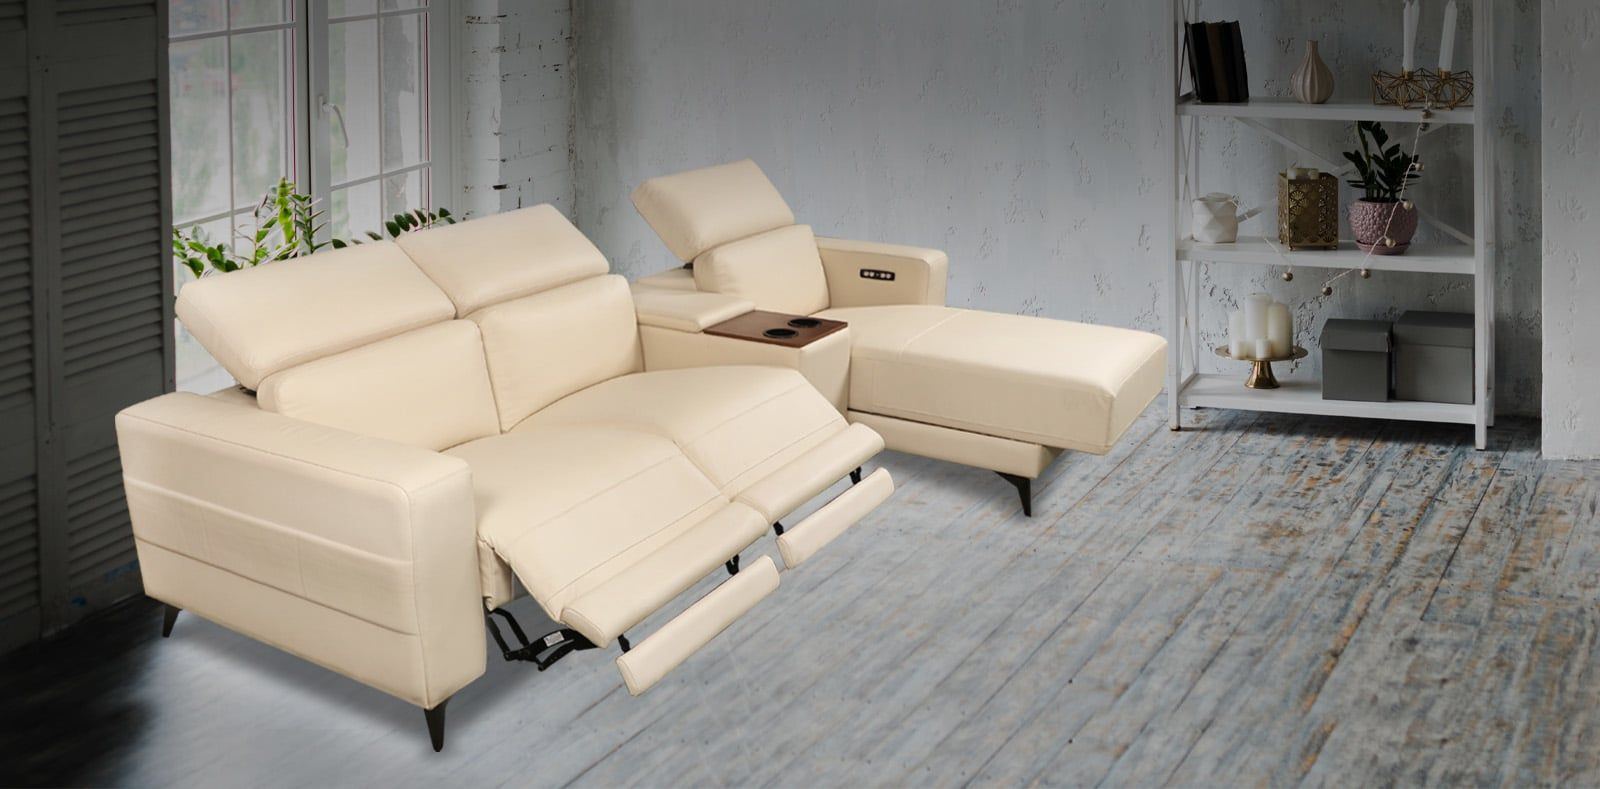 Recliners India : Buy Recliner Sofa & Chair from